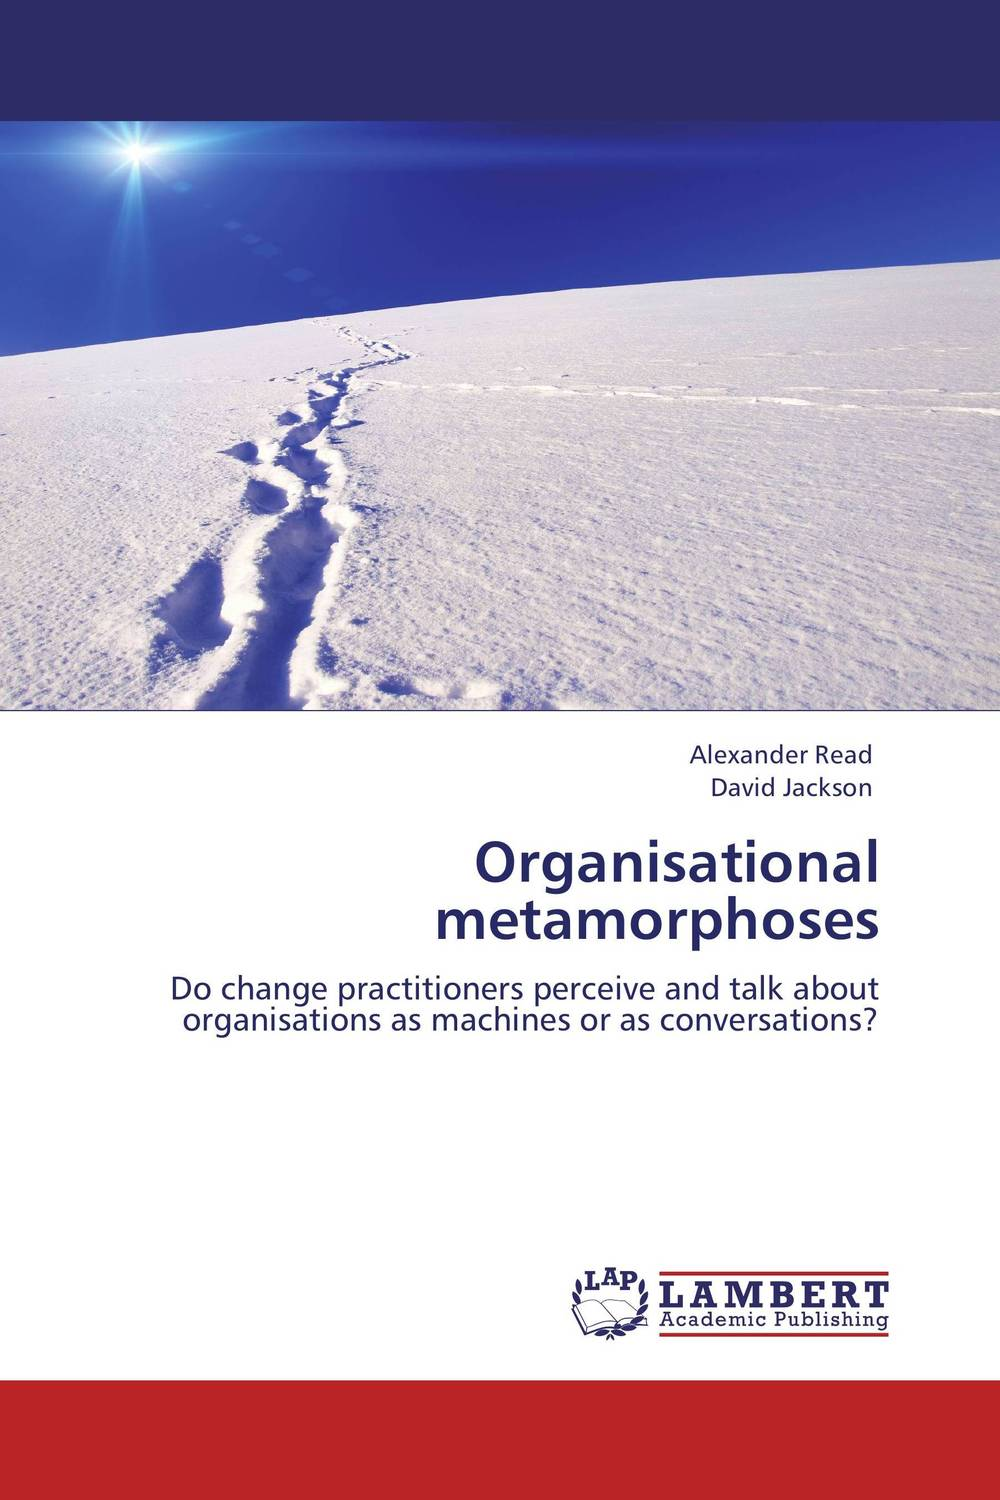 Organisational metamorphoses change from a human perspective